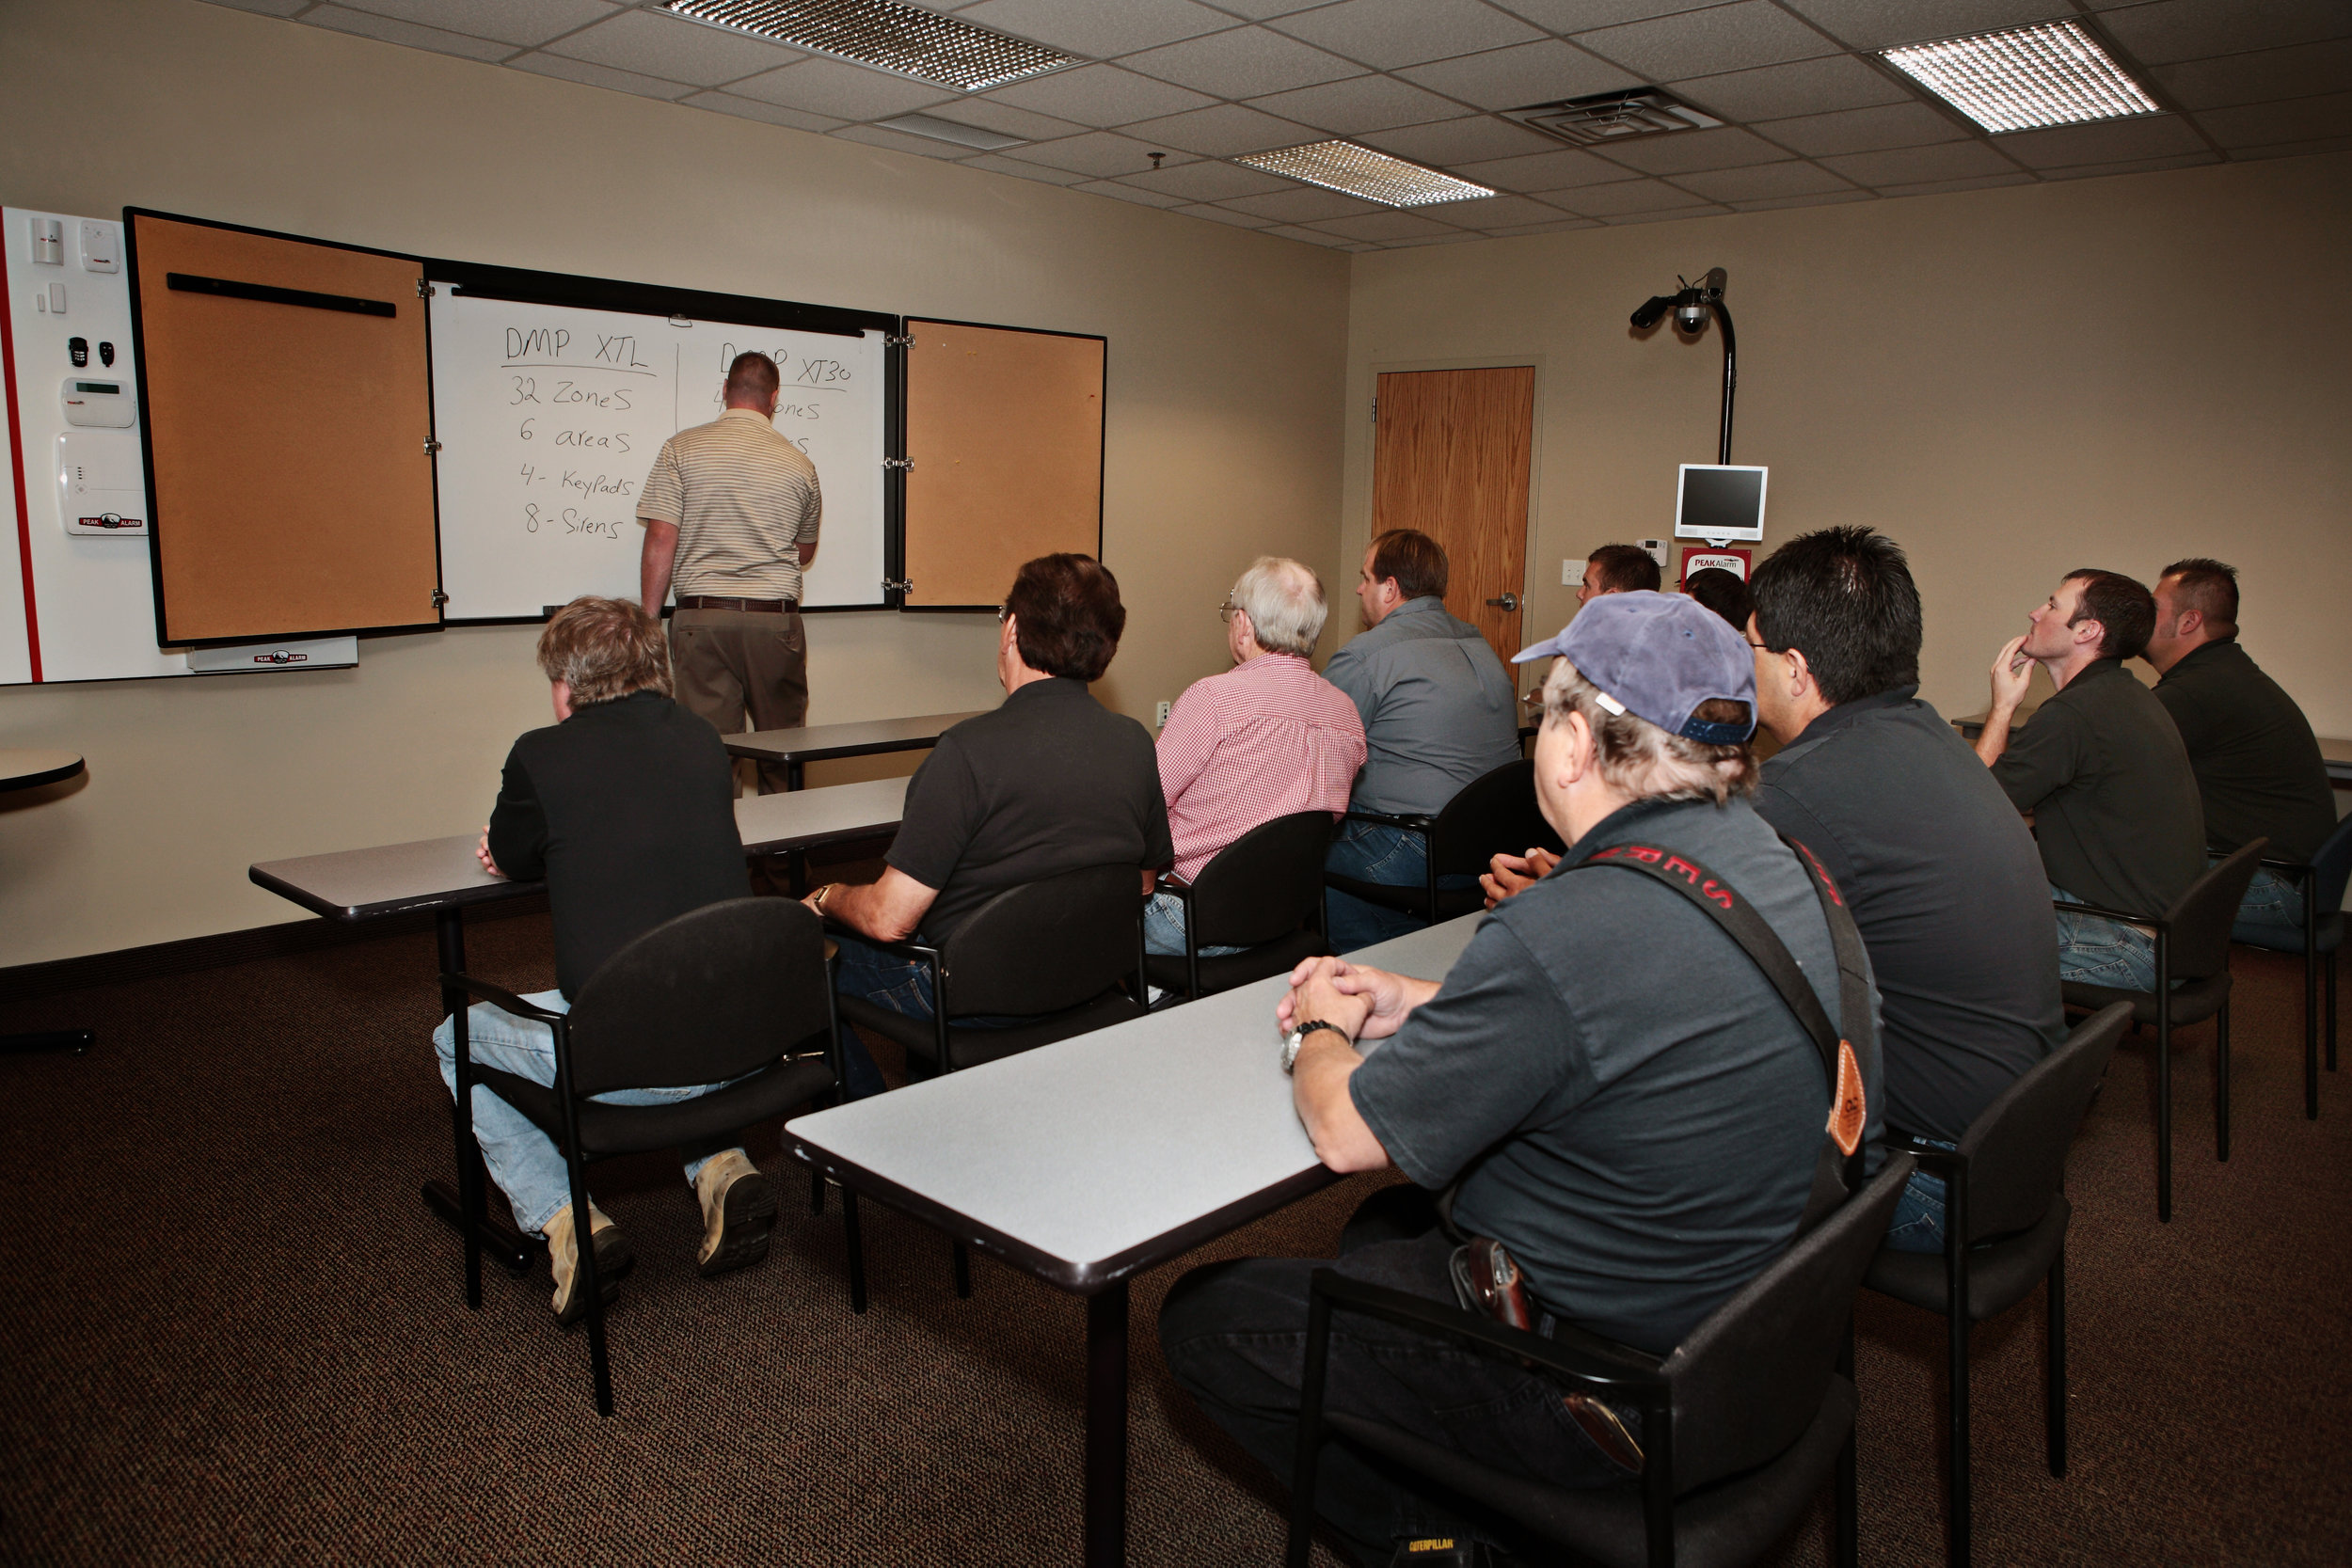 Peak Alarm has ongoing technical training for our employees